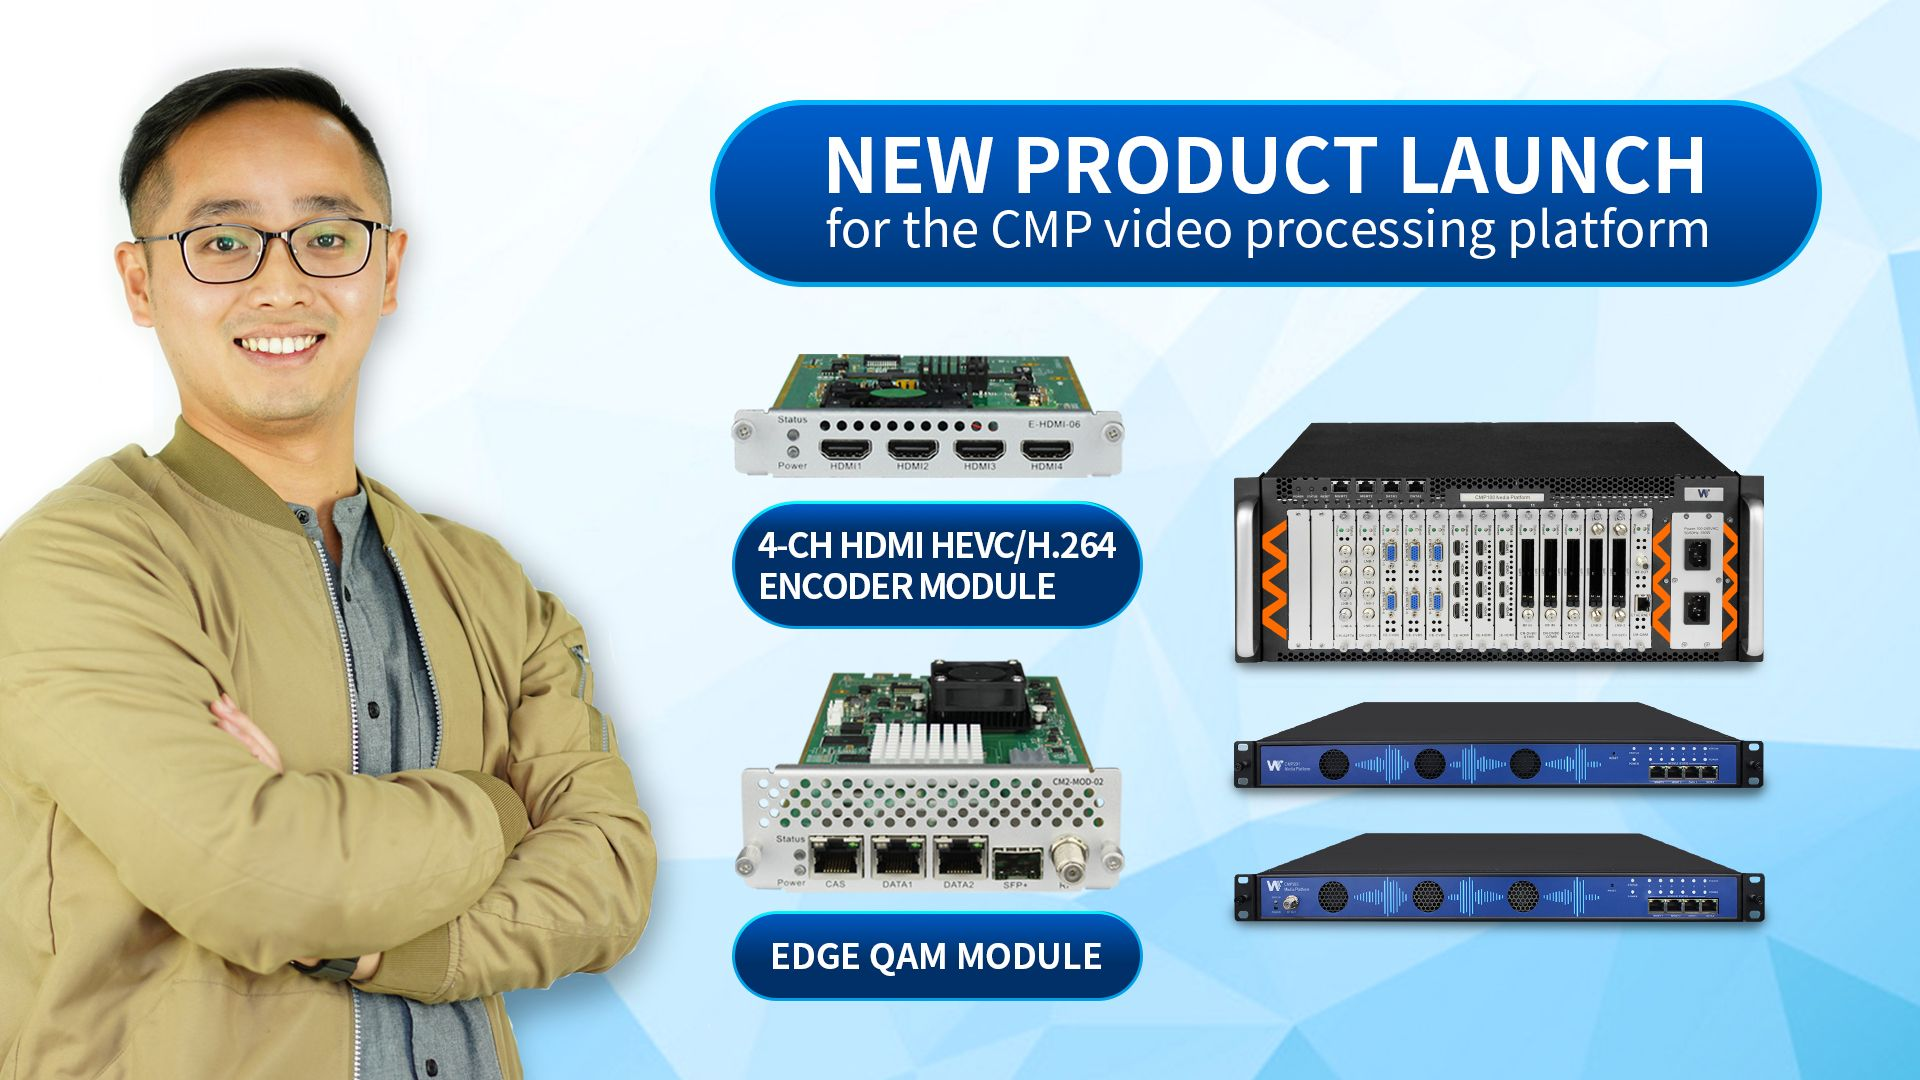 New Product Launch | 4-CH HDMI H.264/H.265 Encoder Module and Edge QAM Module for CMP Video Processing Platform